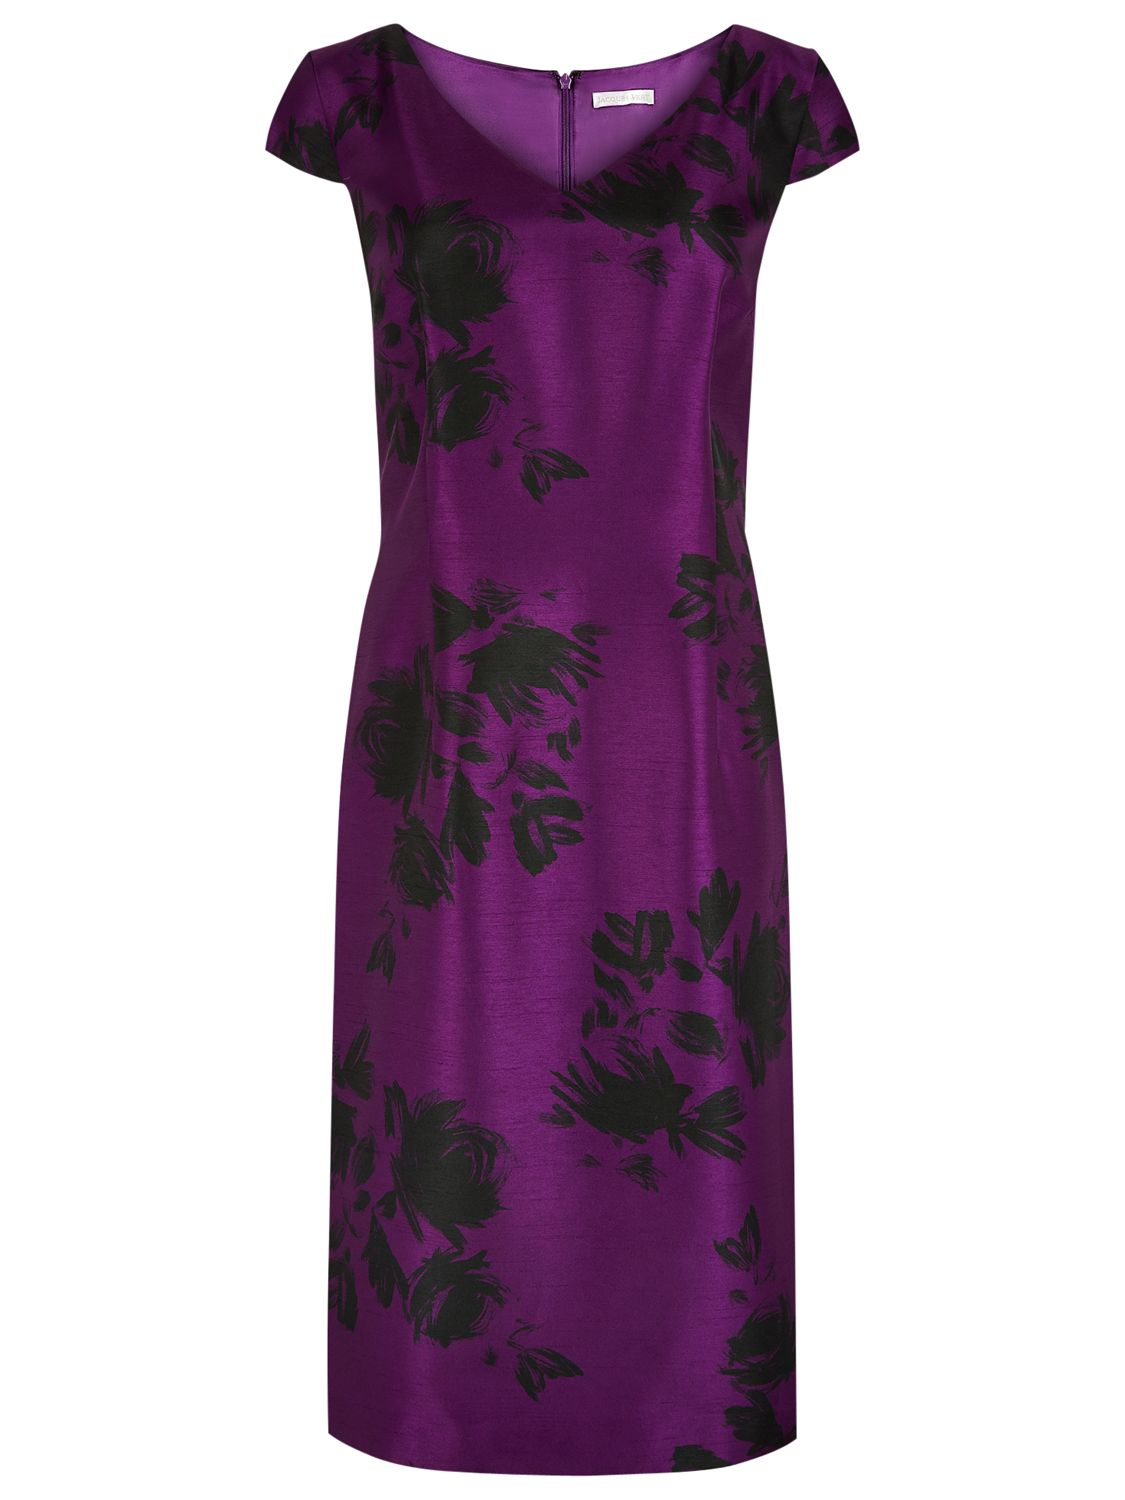 jacques vert floral shadow print dress byzantium, jacques, vert, floral, shadow, print, dress, byzantium, jacques vert, 18|10, clearance, womenswear offers, womens dresses offers, special offers, women, plus size, inactive womenswear, new reductions, womens dresses, 1637119